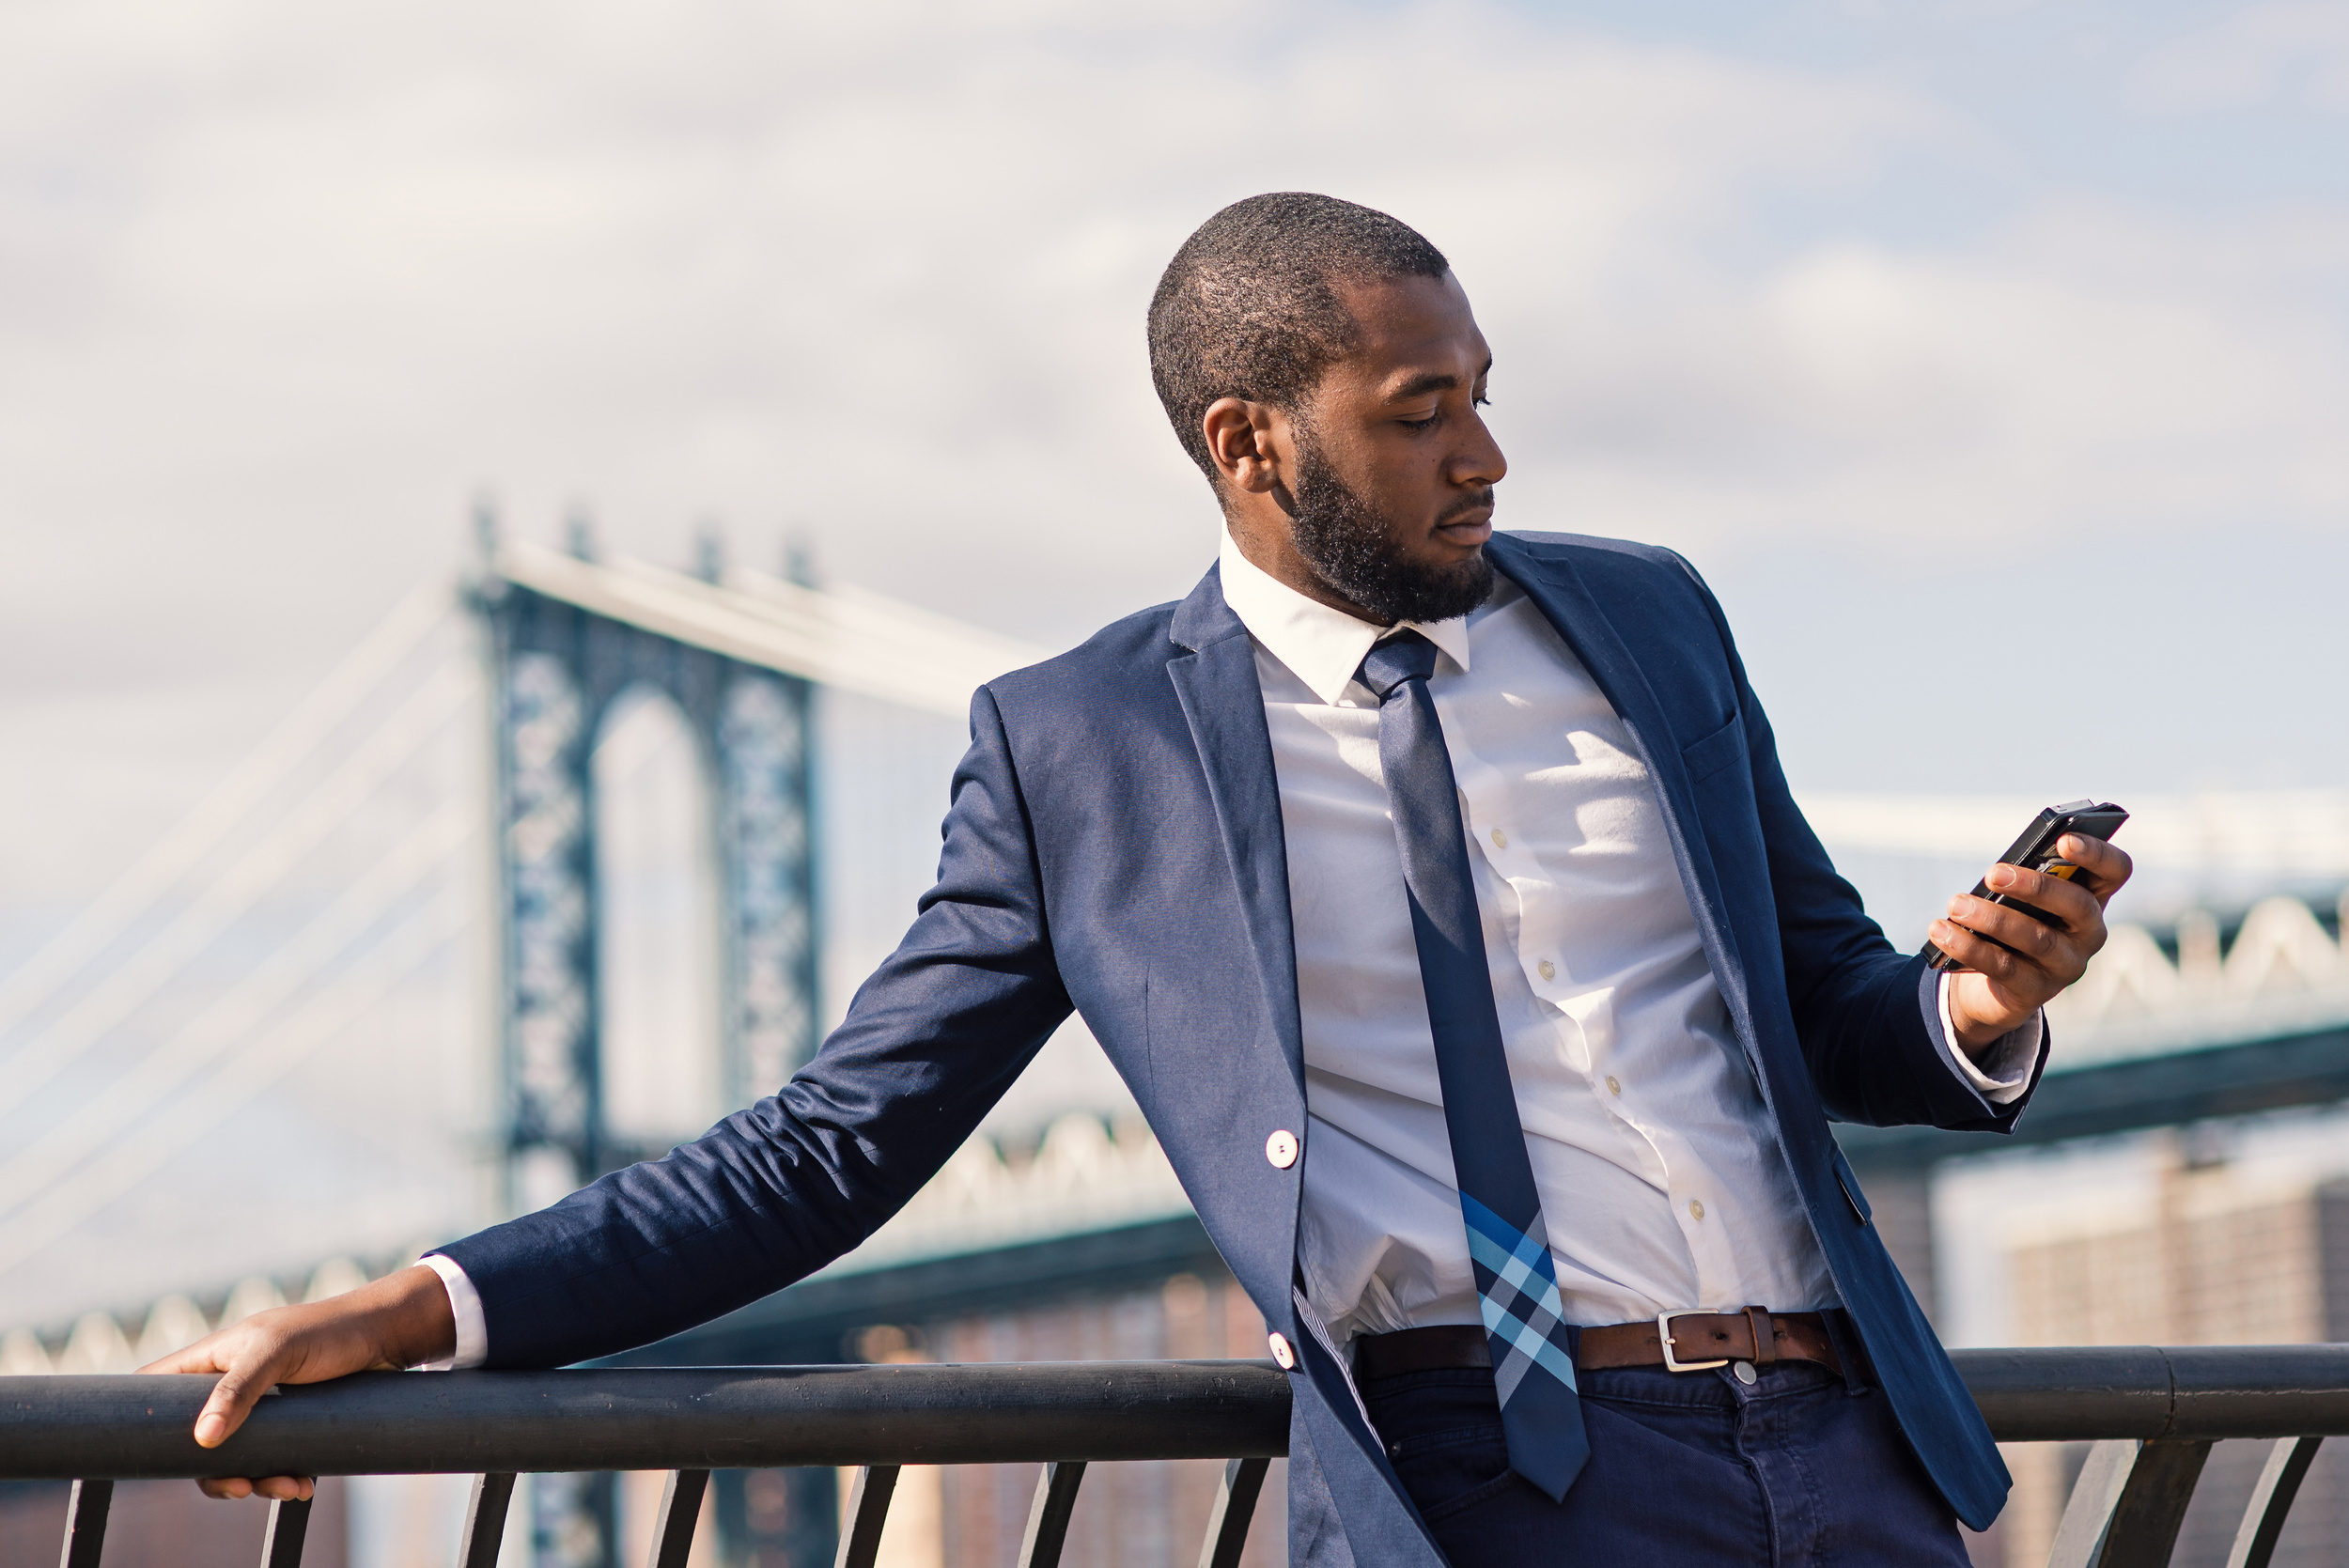 Experience the bunbury difference   Bespoke tailored clothes, custom measured, hand made from the finest materials for a tailored silhouette   Book An Appointment